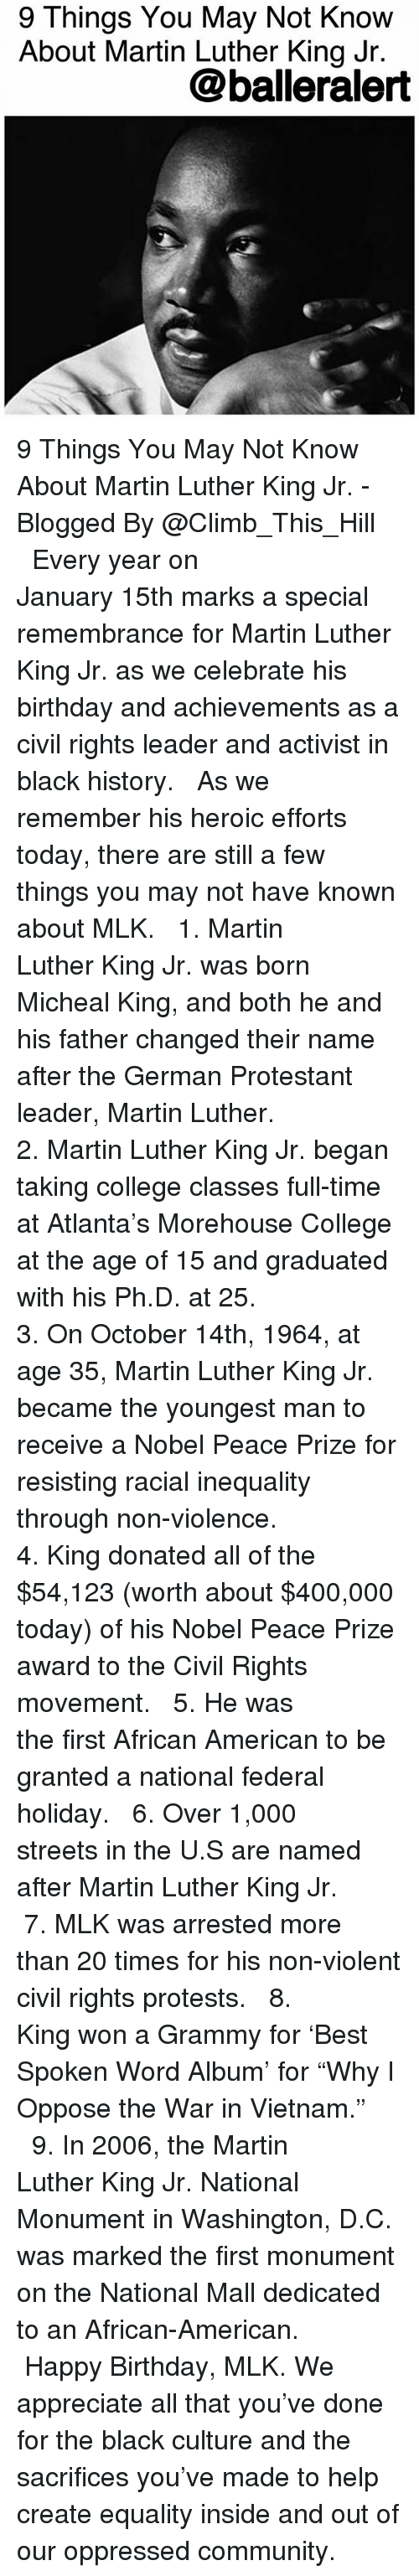 "Birthday, College, and Community: 9 Things You May Not Know  About Martin Luther King Jr.  @balleralert 9 Things You May Not Know About Martin Luther King Jr. - Blogged By @Climb_This_Hill ⠀⠀⠀⠀⠀⠀⠀ ⠀⠀⠀⠀⠀⠀⠀ Every year on January 15th marks a special remembrance for Martin Luther King Jr. as we celebrate his birthday and achievements as a civil rights leader and activist in black history. ⠀⠀⠀⠀⠀⠀⠀ ⠀⠀⠀⠀⠀⠀⠀ As we remember his heroic efforts today, there are still a few things you may not have known about MLK. ⠀⠀⠀⠀⠀⠀⠀ ⠀⠀⠀⠀⠀⠀⠀ 1. Martin Luther King Jr. was born Micheal King, and both he and his father changed their name after the German Protestant leader, Martin Luther. ⠀⠀⠀⠀⠀⠀⠀ ⠀⠀⠀⠀⠀⠀⠀ 2. Martin Luther King Jr. began taking college classes full-time at Atlanta's Morehouse College at the age of 15 and graduated with his Ph.D. at 25. ⠀⠀⠀⠀⠀⠀⠀ ⠀⠀⠀⠀⠀⠀⠀ 3. On October 14th, 1964, at age 35, Martin Luther King Jr. became the youngest man to receive a Nobel Peace Prize for resisting racial inequality through non-violence. ⠀⠀⠀⠀⠀⠀⠀ ⠀⠀⠀⠀⠀⠀⠀ 4. King donated all of the $54,123 (worth about $400,000 today) of his Nobel Peace Prize award to the Civil Rights movement. ⠀⠀⠀⠀⠀⠀⠀ ⠀⠀⠀⠀⠀⠀⠀ 5. He was the first African American to be granted a national federal holiday. ⠀⠀⠀⠀⠀⠀⠀ ⠀⠀⠀⠀⠀⠀⠀ 6. Over 1,000 streets in the U.S are named after Martin Luther King Jr. ⠀⠀⠀⠀⠀⠀⠀ ⠀⠀⠀⠀⠀⠀⠀ 7. MLK was arrested more than 20 times for his non-violent civil rights protests. ⠀⠀⠀⠀⠀⠀⠀ ⠀⠀⠀⠀⠀⠀⠀ 8. King won a Grammy for 'Best Spoken Word Album' for ""Why I Oppose the War in Vietnam."" ⠀⠀⠀⠀⠀⠀⠀ ⠀⠀⠀⠀⠀⠀⠀ 9. In 2006, the Martin Luther King Jr. National Monument in Washington, D.C. was marked the first monument on the National Mall dedicated to an African-American. ⠀⠀⠀⠀⠀⠀⠀ ⠀⠀⠀⠀⠀⠀⠀ Happy Birthday, MLK. We appreciate all that you've done for the black culture and the sacrifices you've made to help create equality inside and out of our oppressed community."